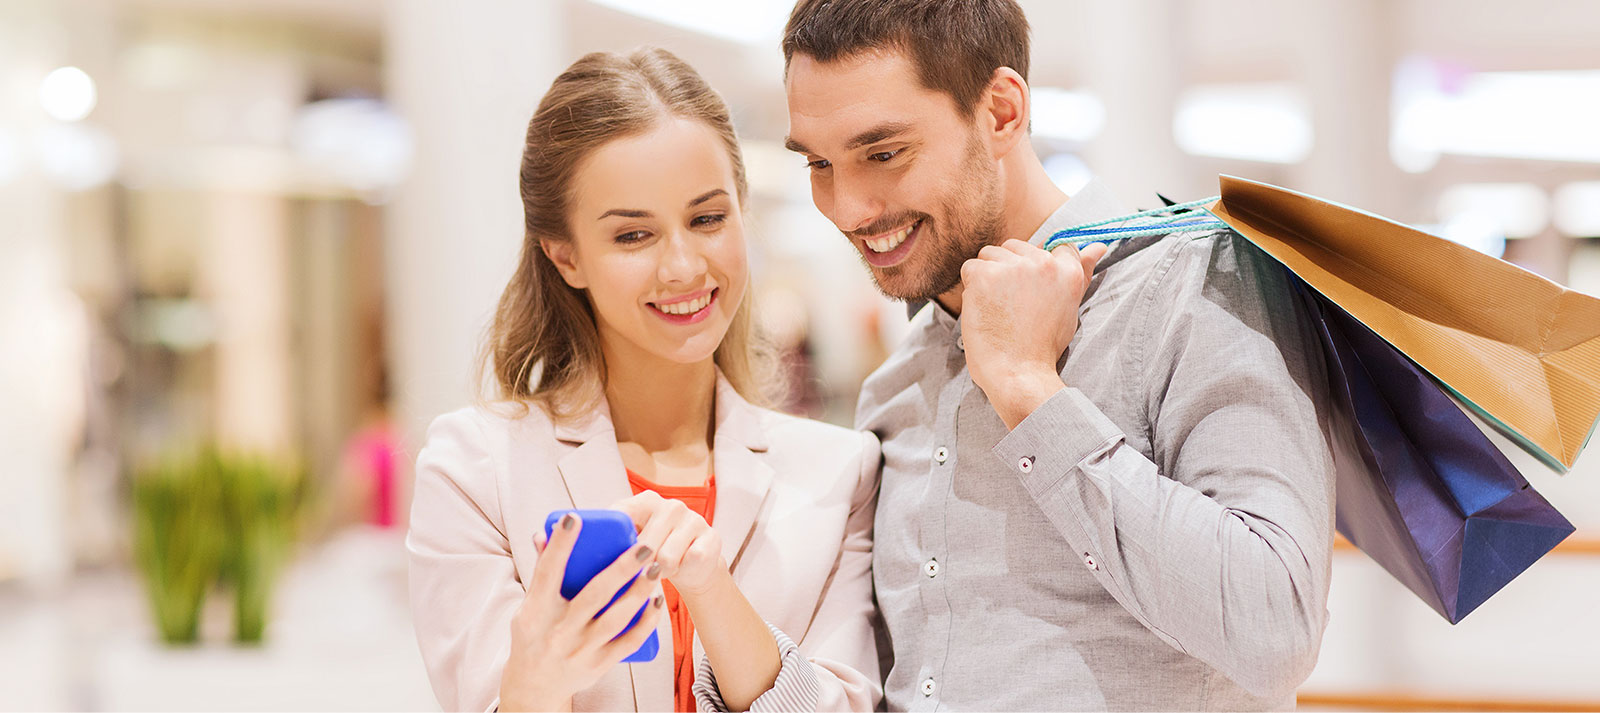 4 sure-shot ways to attract mobile shoppers